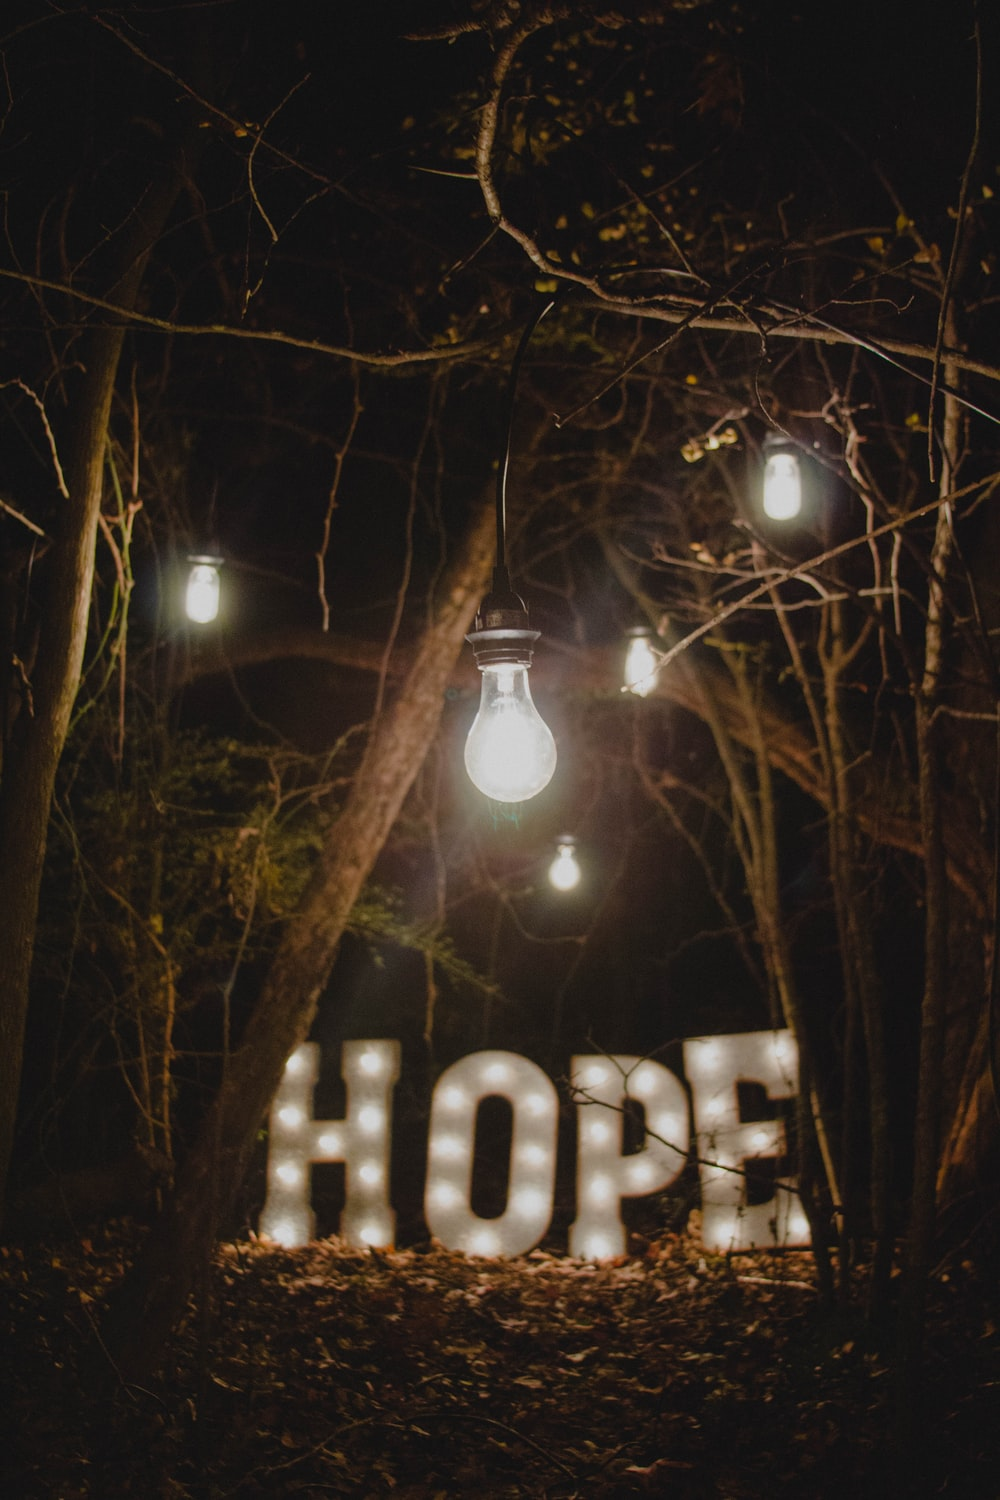 hope marquee signage surrounded by trees